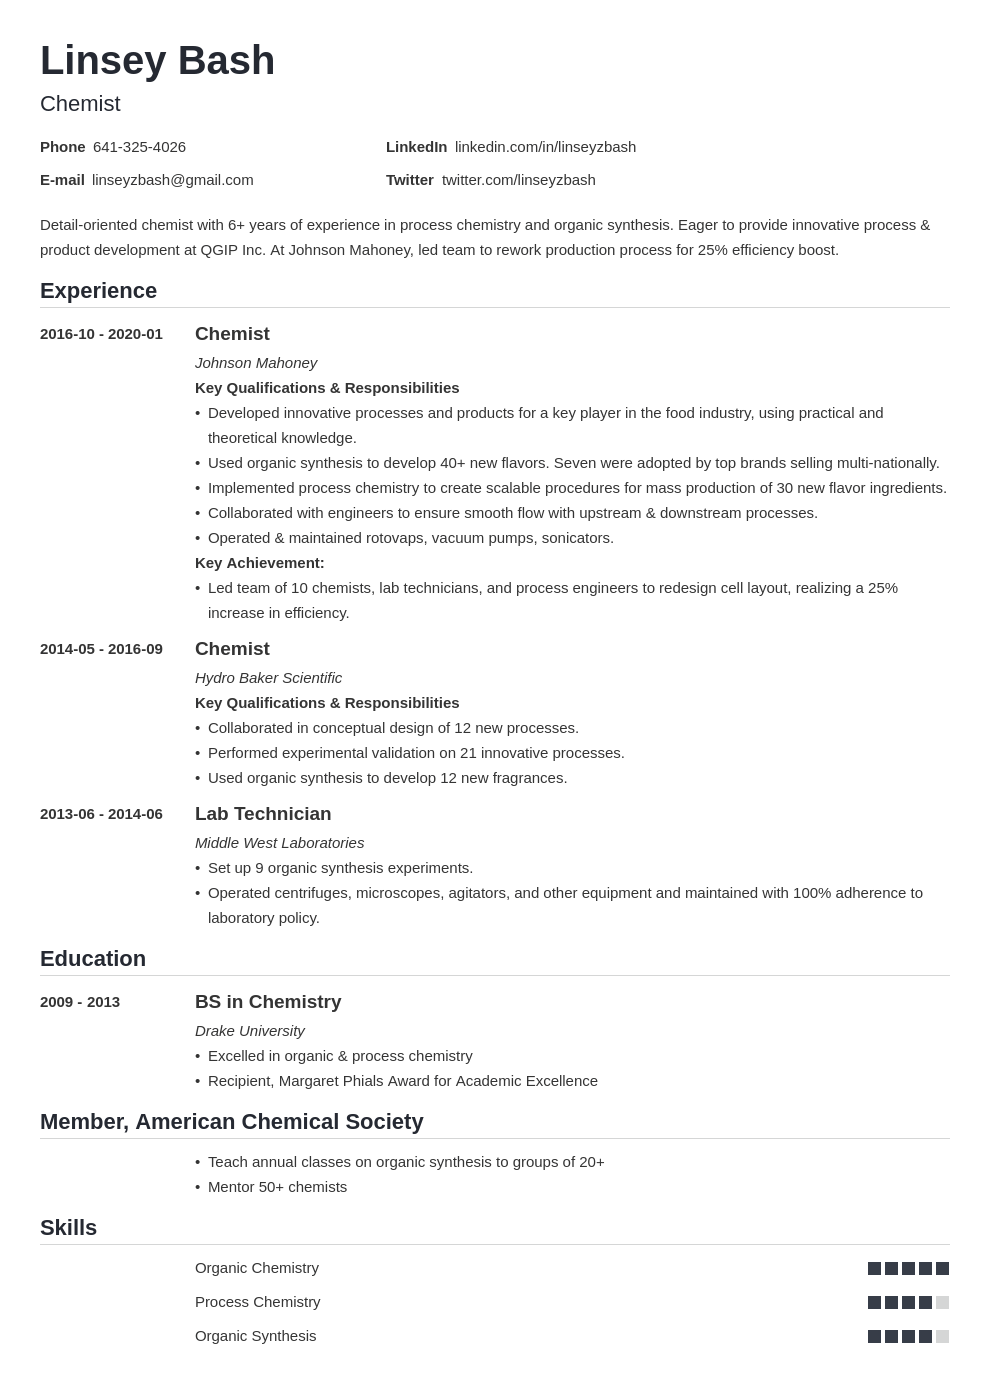 Chemistry Resume Examples Guide For Chemists